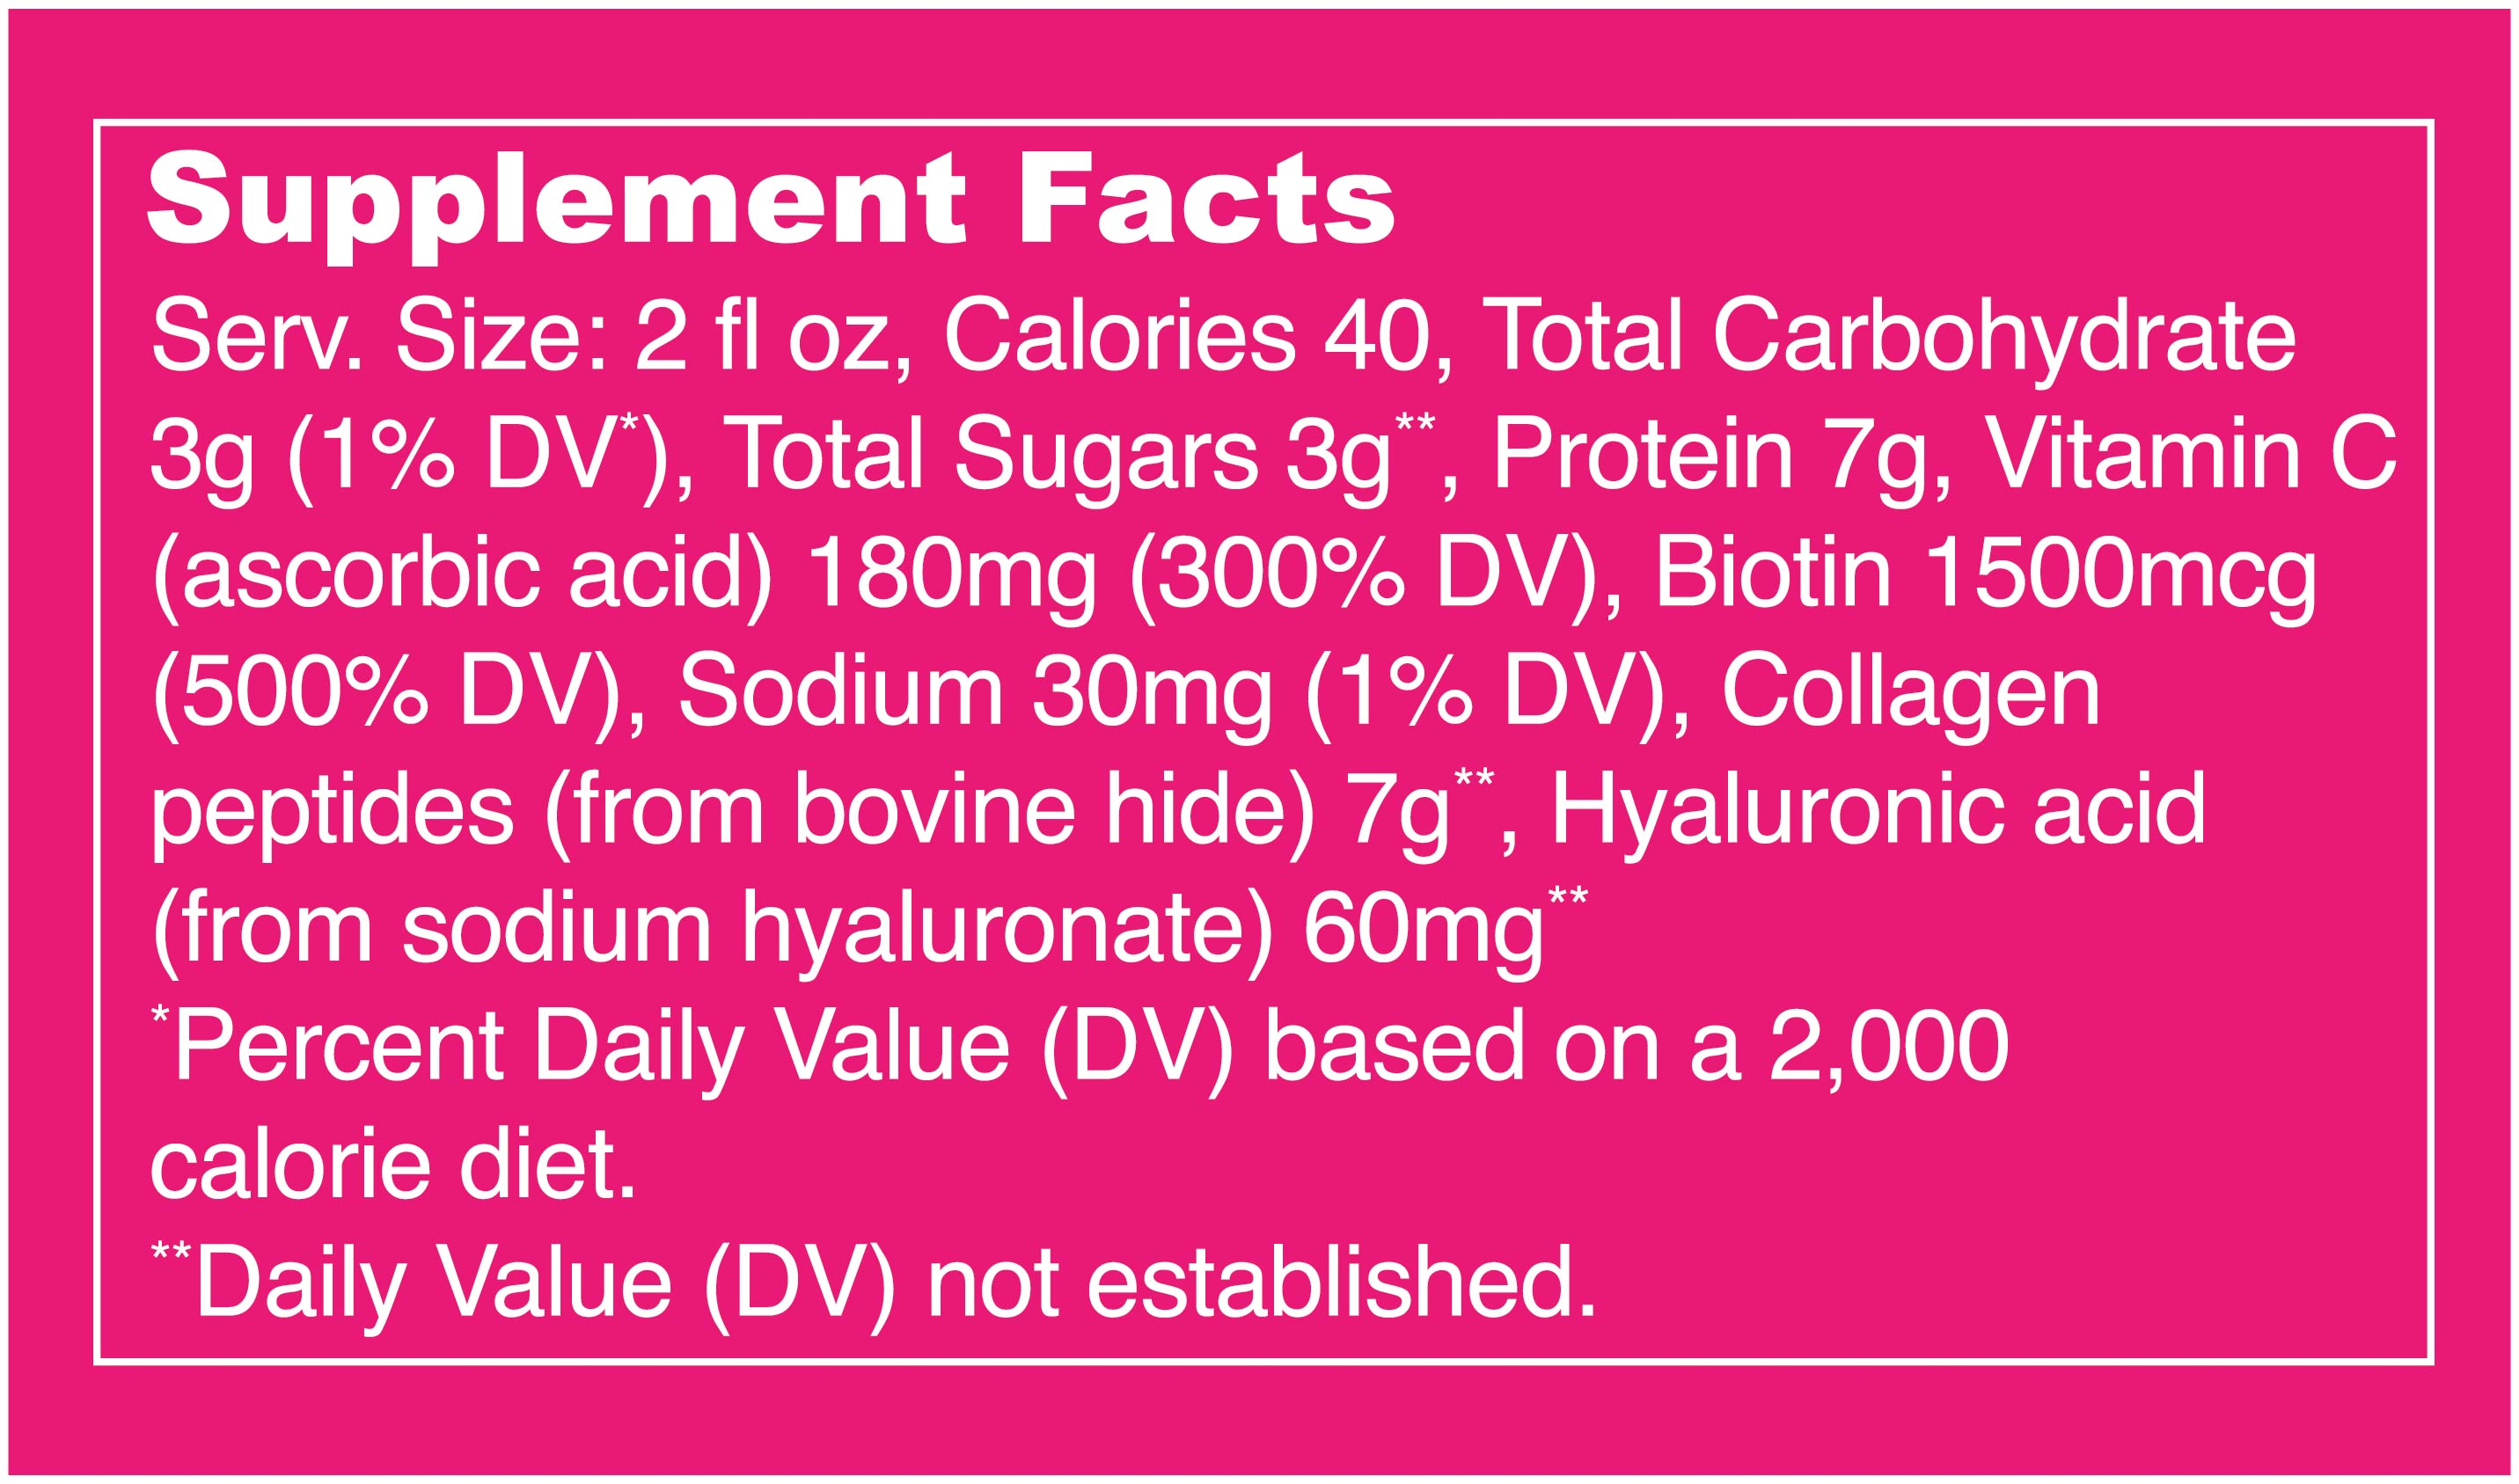 Collagen Shot Glow Supplement Facts. Serving Size: 2 fl oz. Calories: 40. Total Carbs: 3g (1% DV). Total Sugars: 3g. Protein: 7g. Vitamin C: 180mg (300% DV). Biotin: 1500mcg (500% DV). Sodium: 30mg (1% DV). Collagen Peptides (bovine): 7g. Hyaluronic Acid: 60mg.